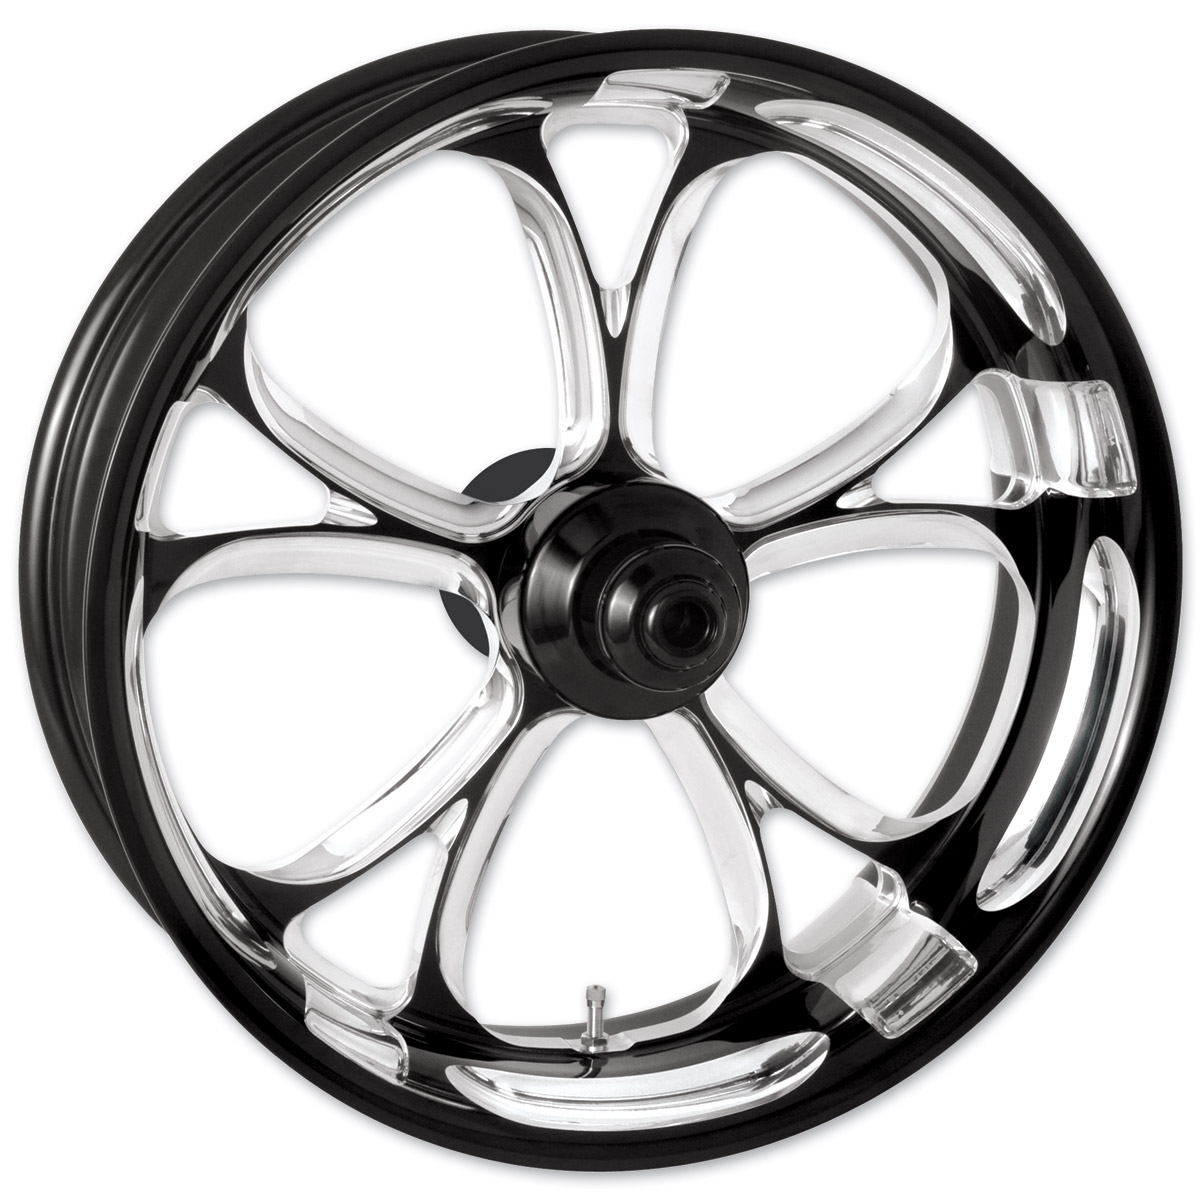 Performance Machine Luxe Contrast Cut Platinum ABS Front Wheel, 23″ x 3.5″ with ABS